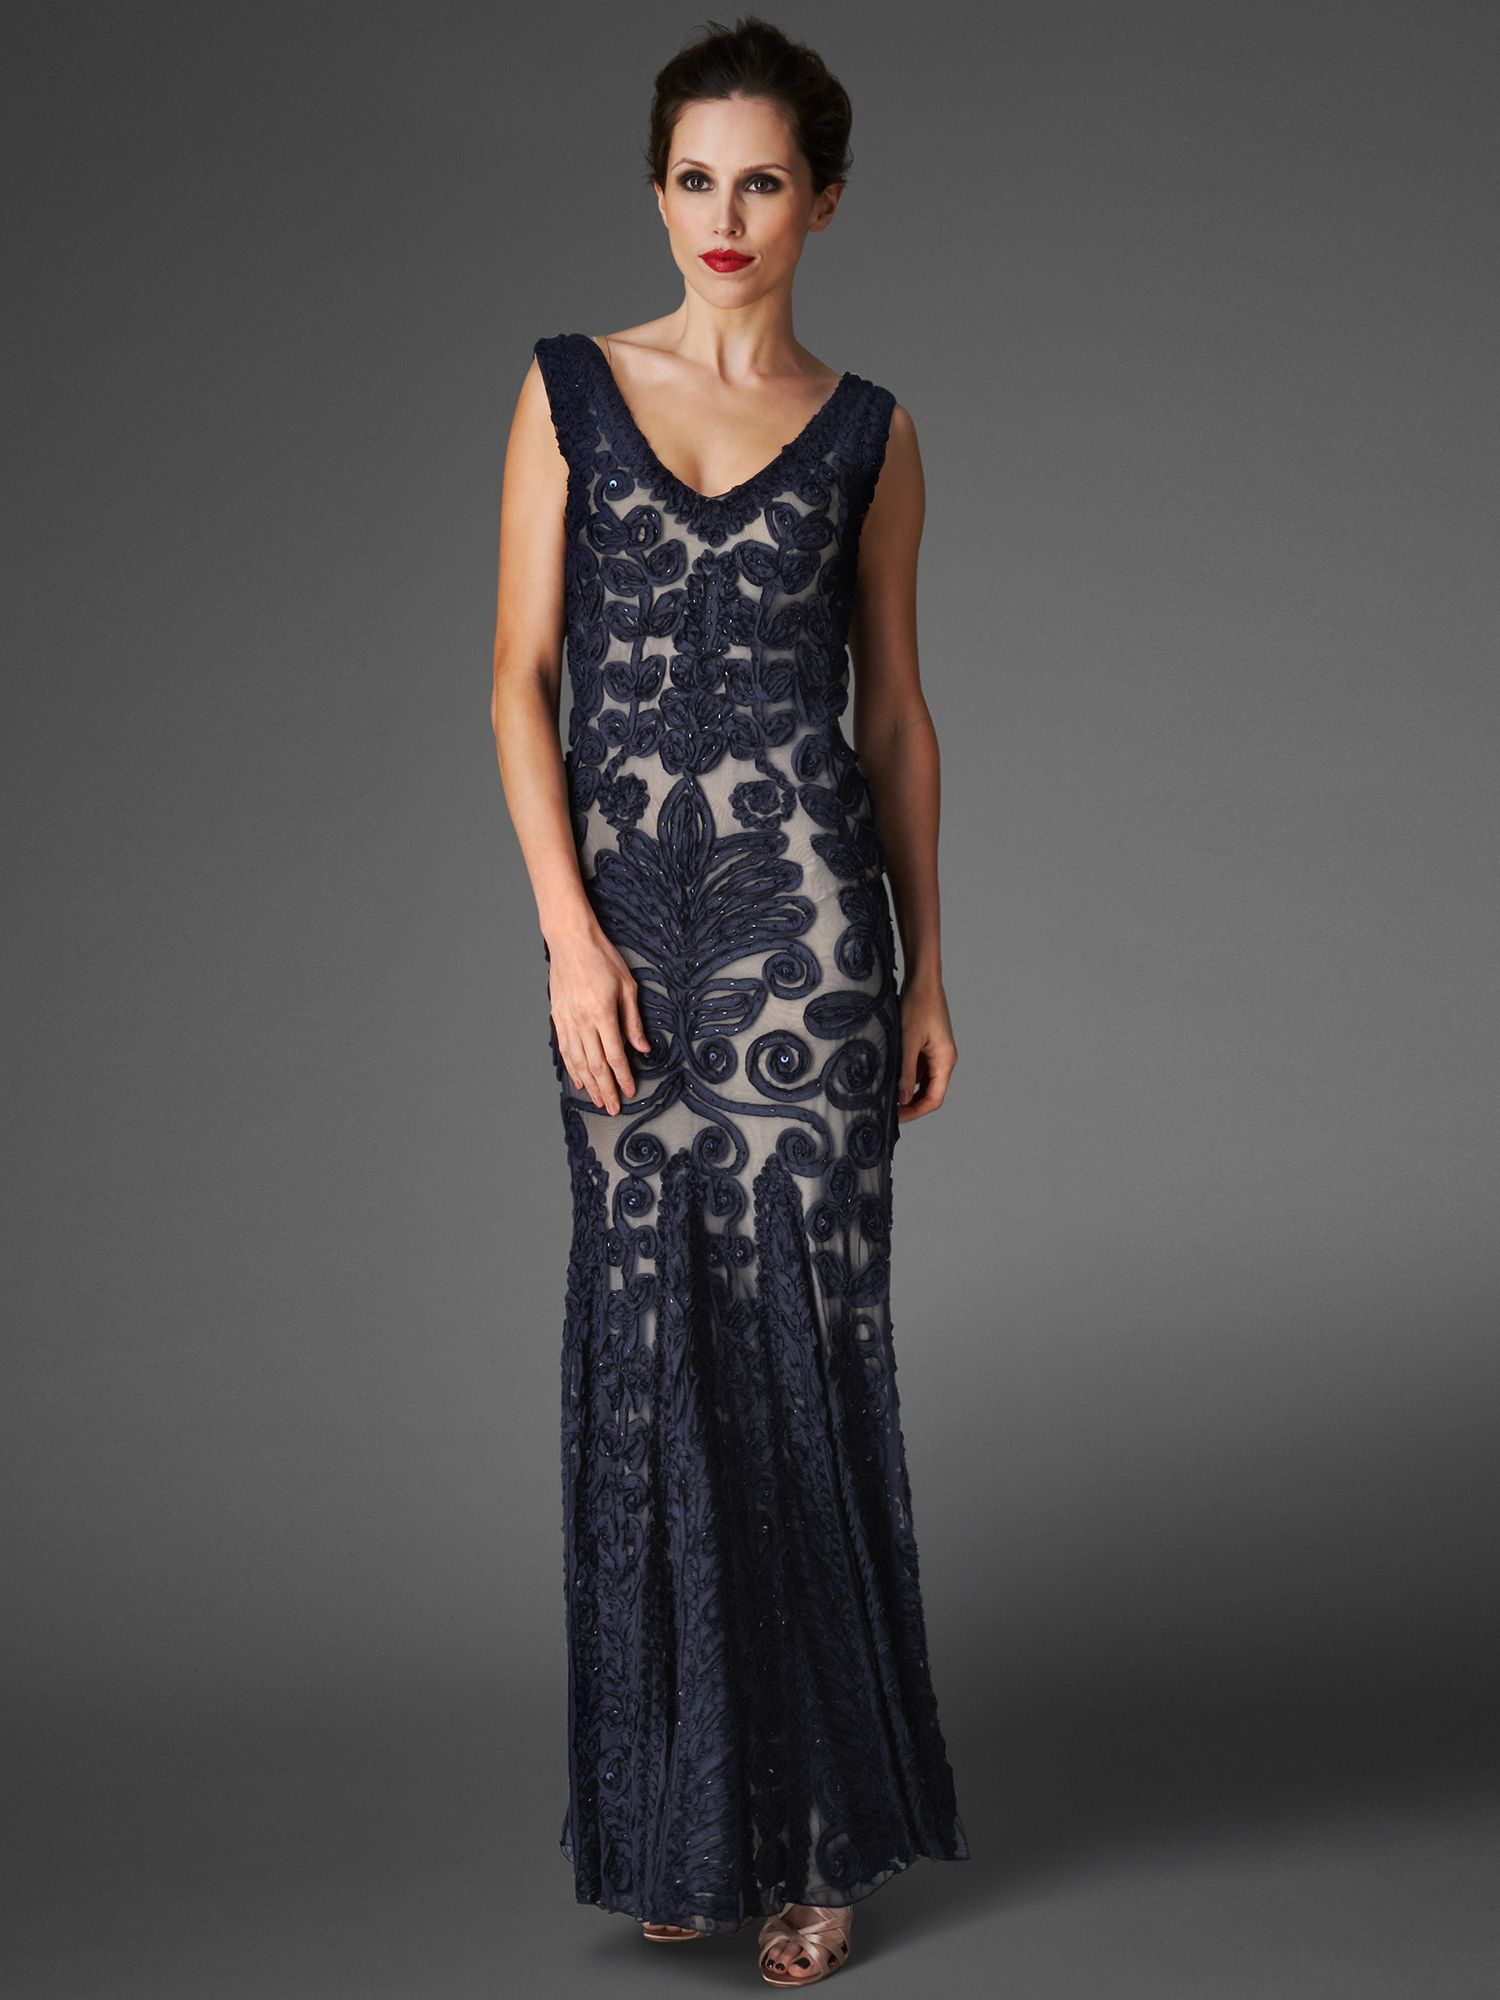 Paloma full length dress